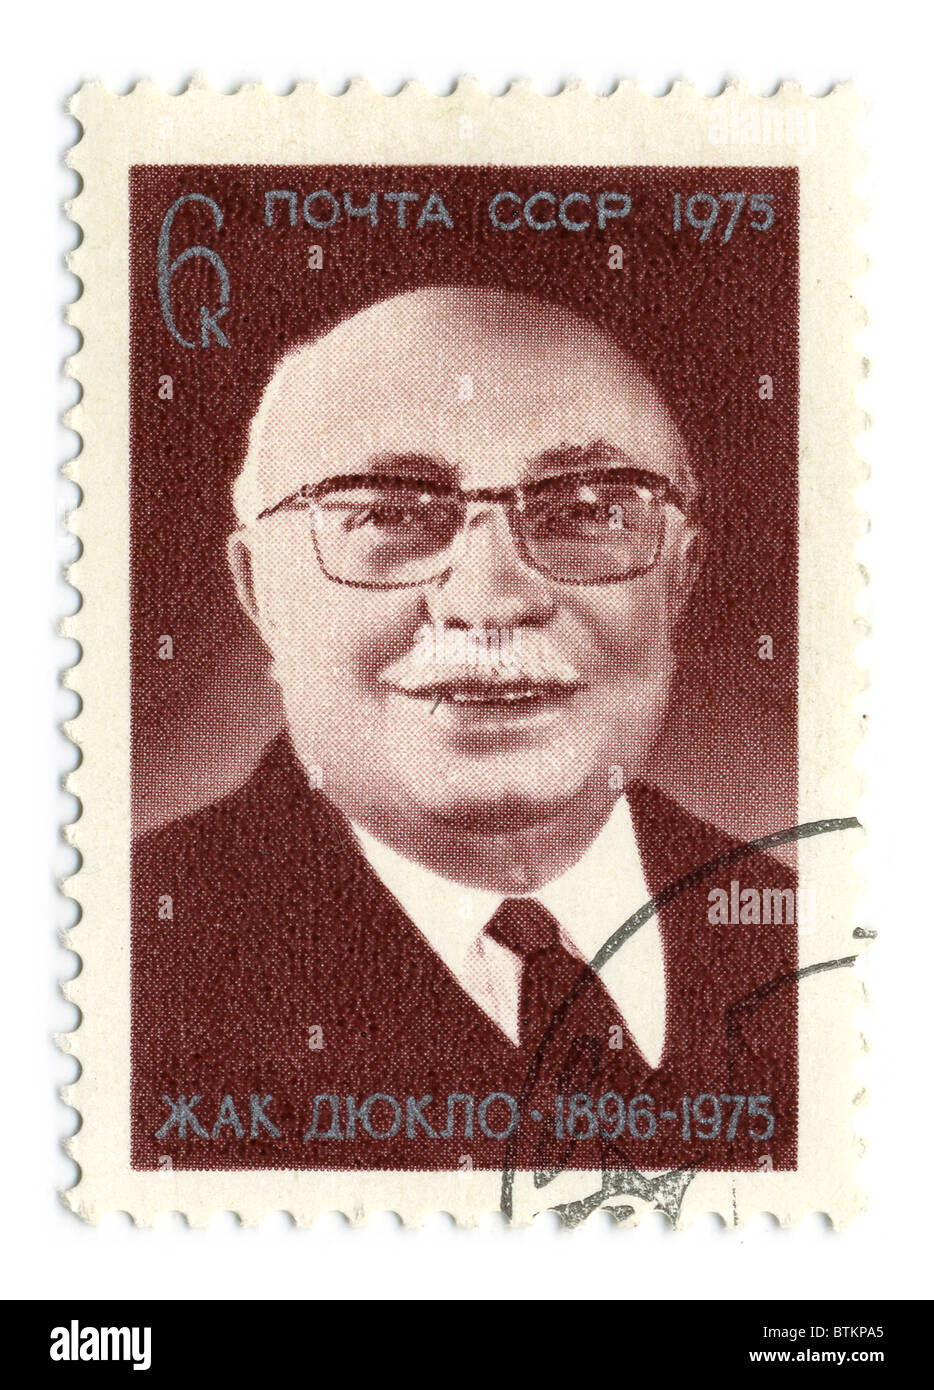 USSR - CIRCA 1975: An USSR Used Postage Stamp showing Portrait of French Communist politician Jacques Duclos, circa - Stock Image